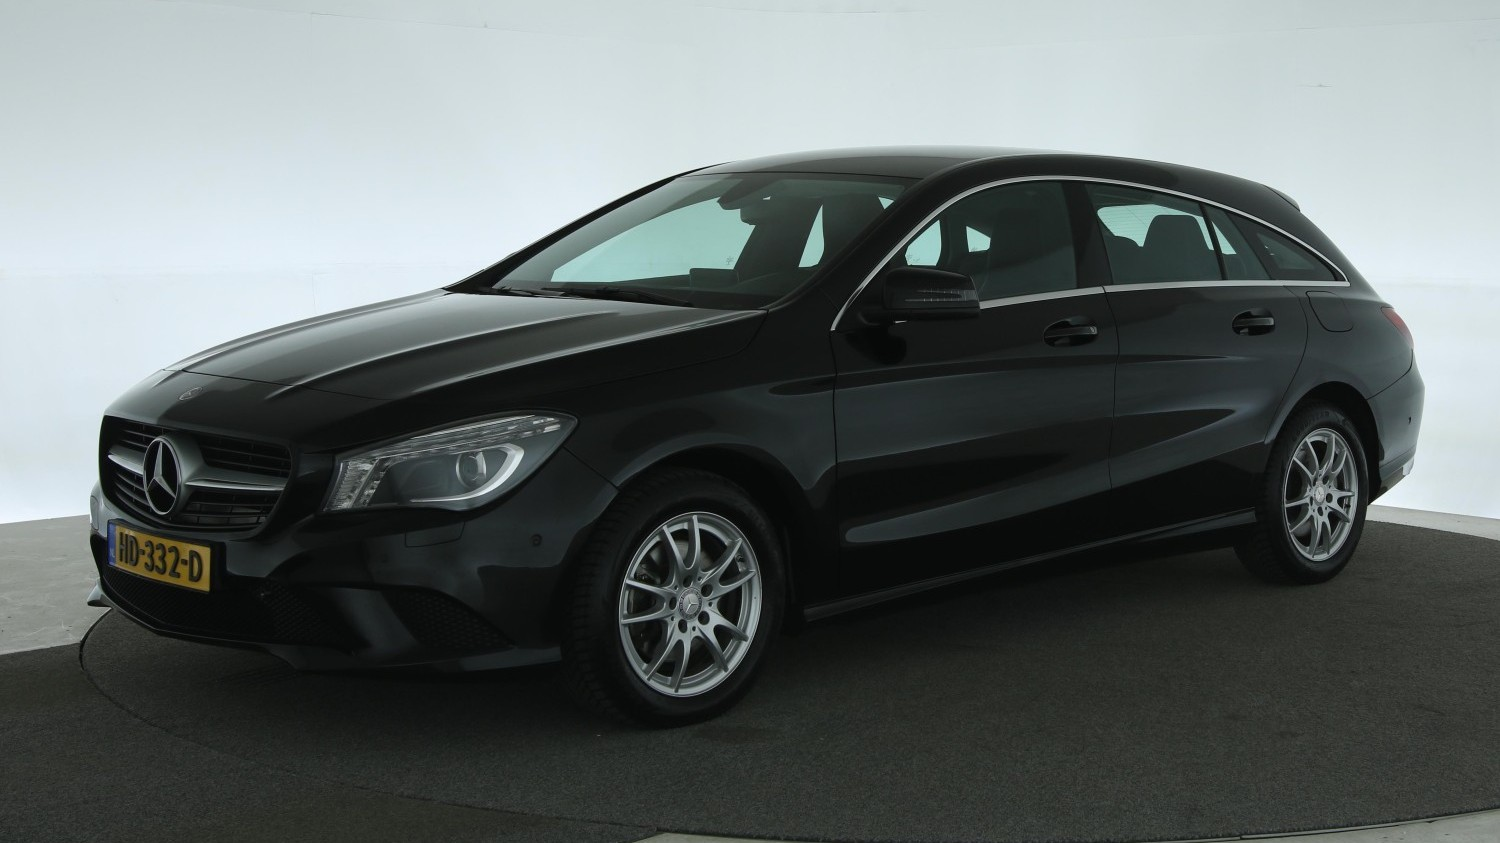 Mercedes-Benz CLA-klasse Station 2015 HD-332-D 1